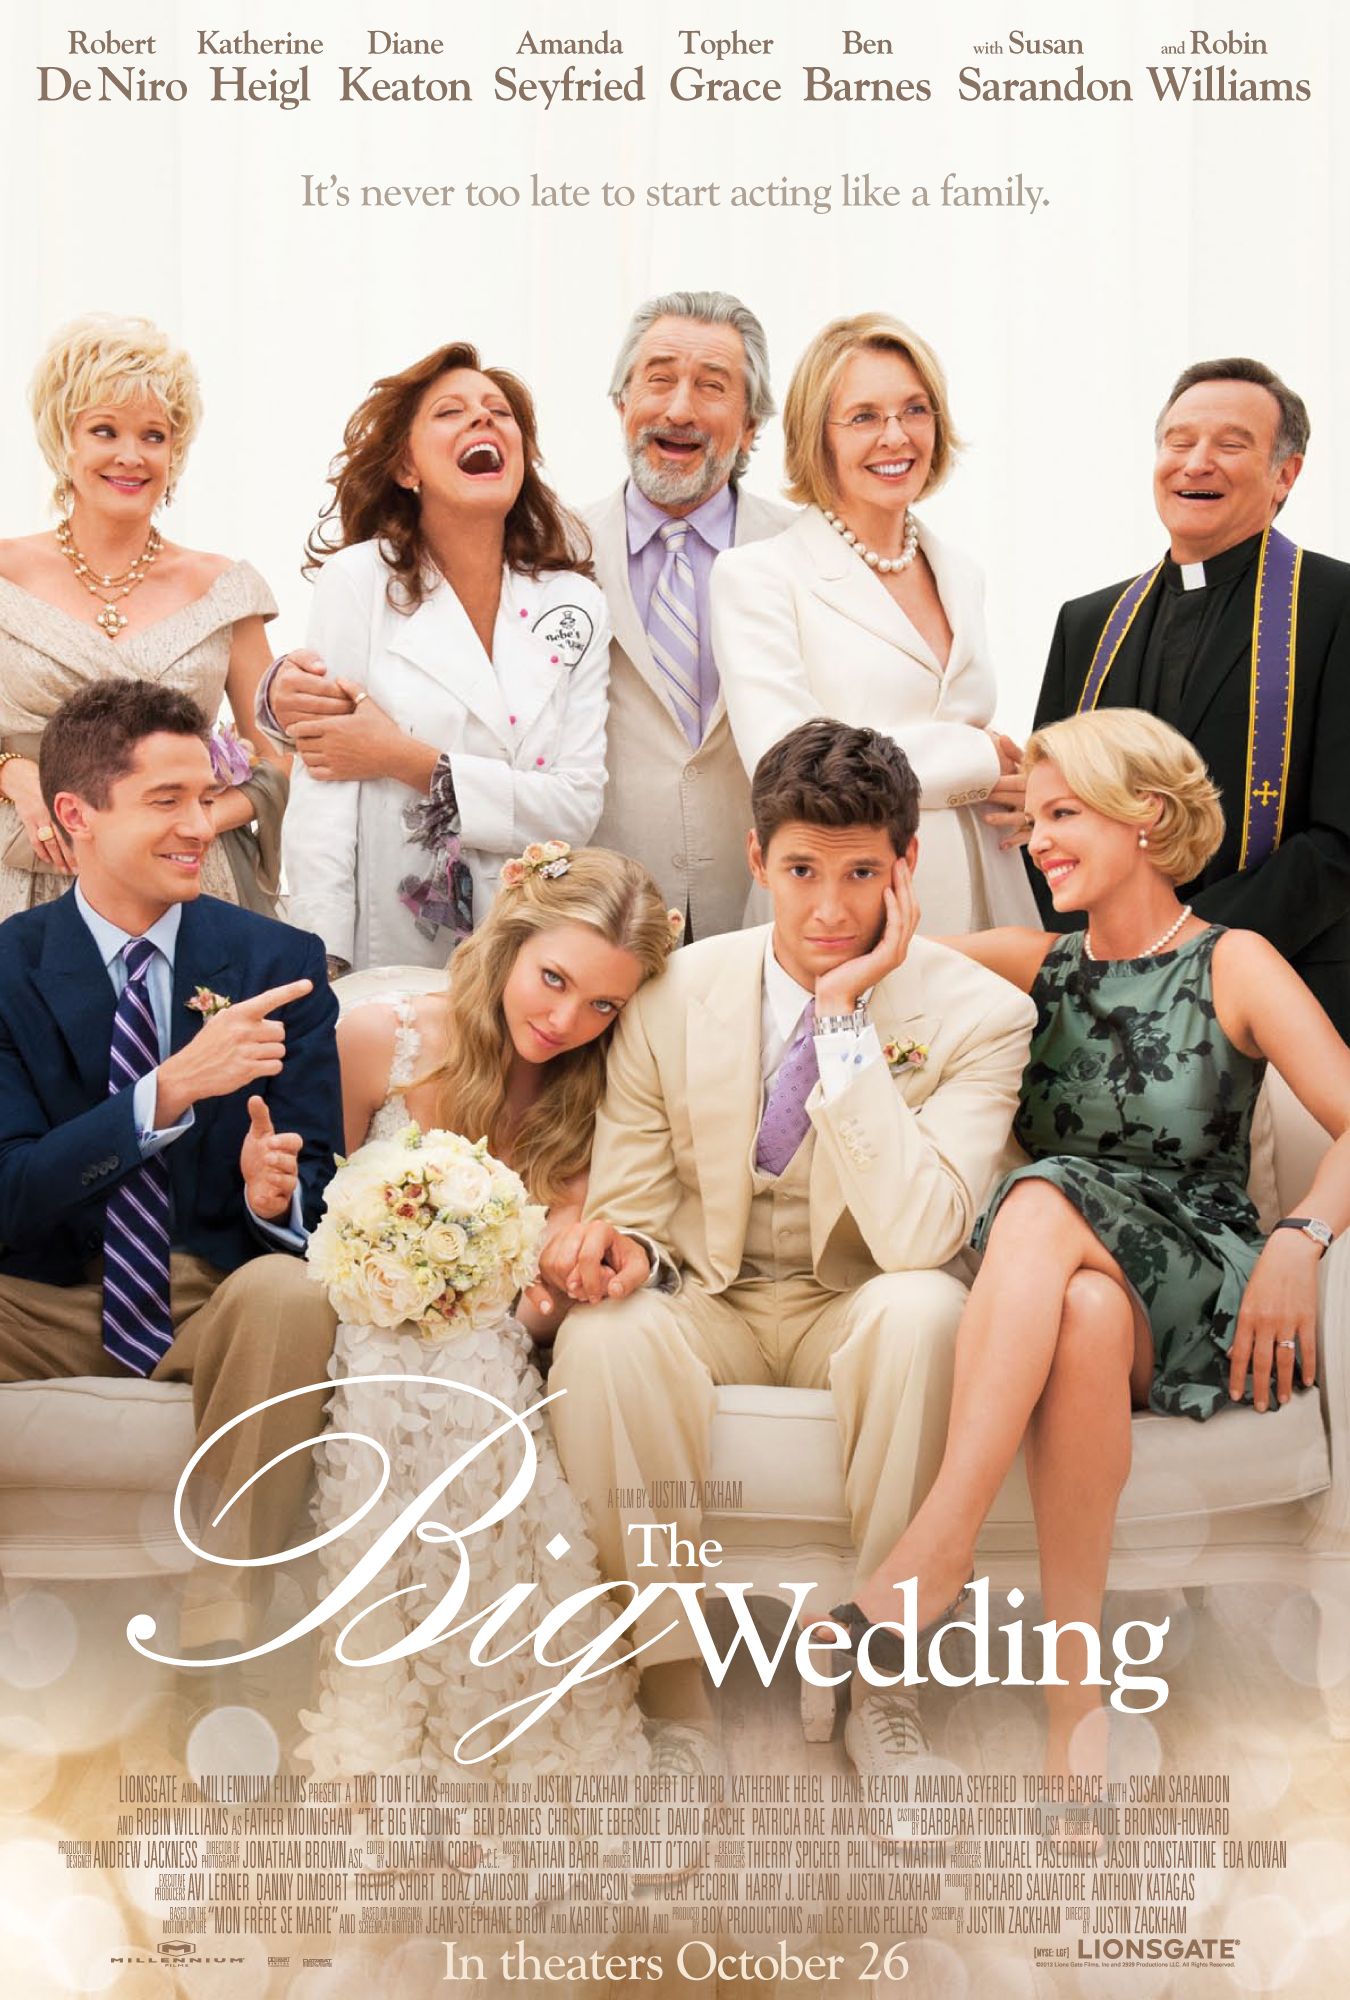 TBW 1Sheet V12 sRGB OC The Big Wedding Cast Experiences Pre Wedding Jitters in New Trailer and Photos